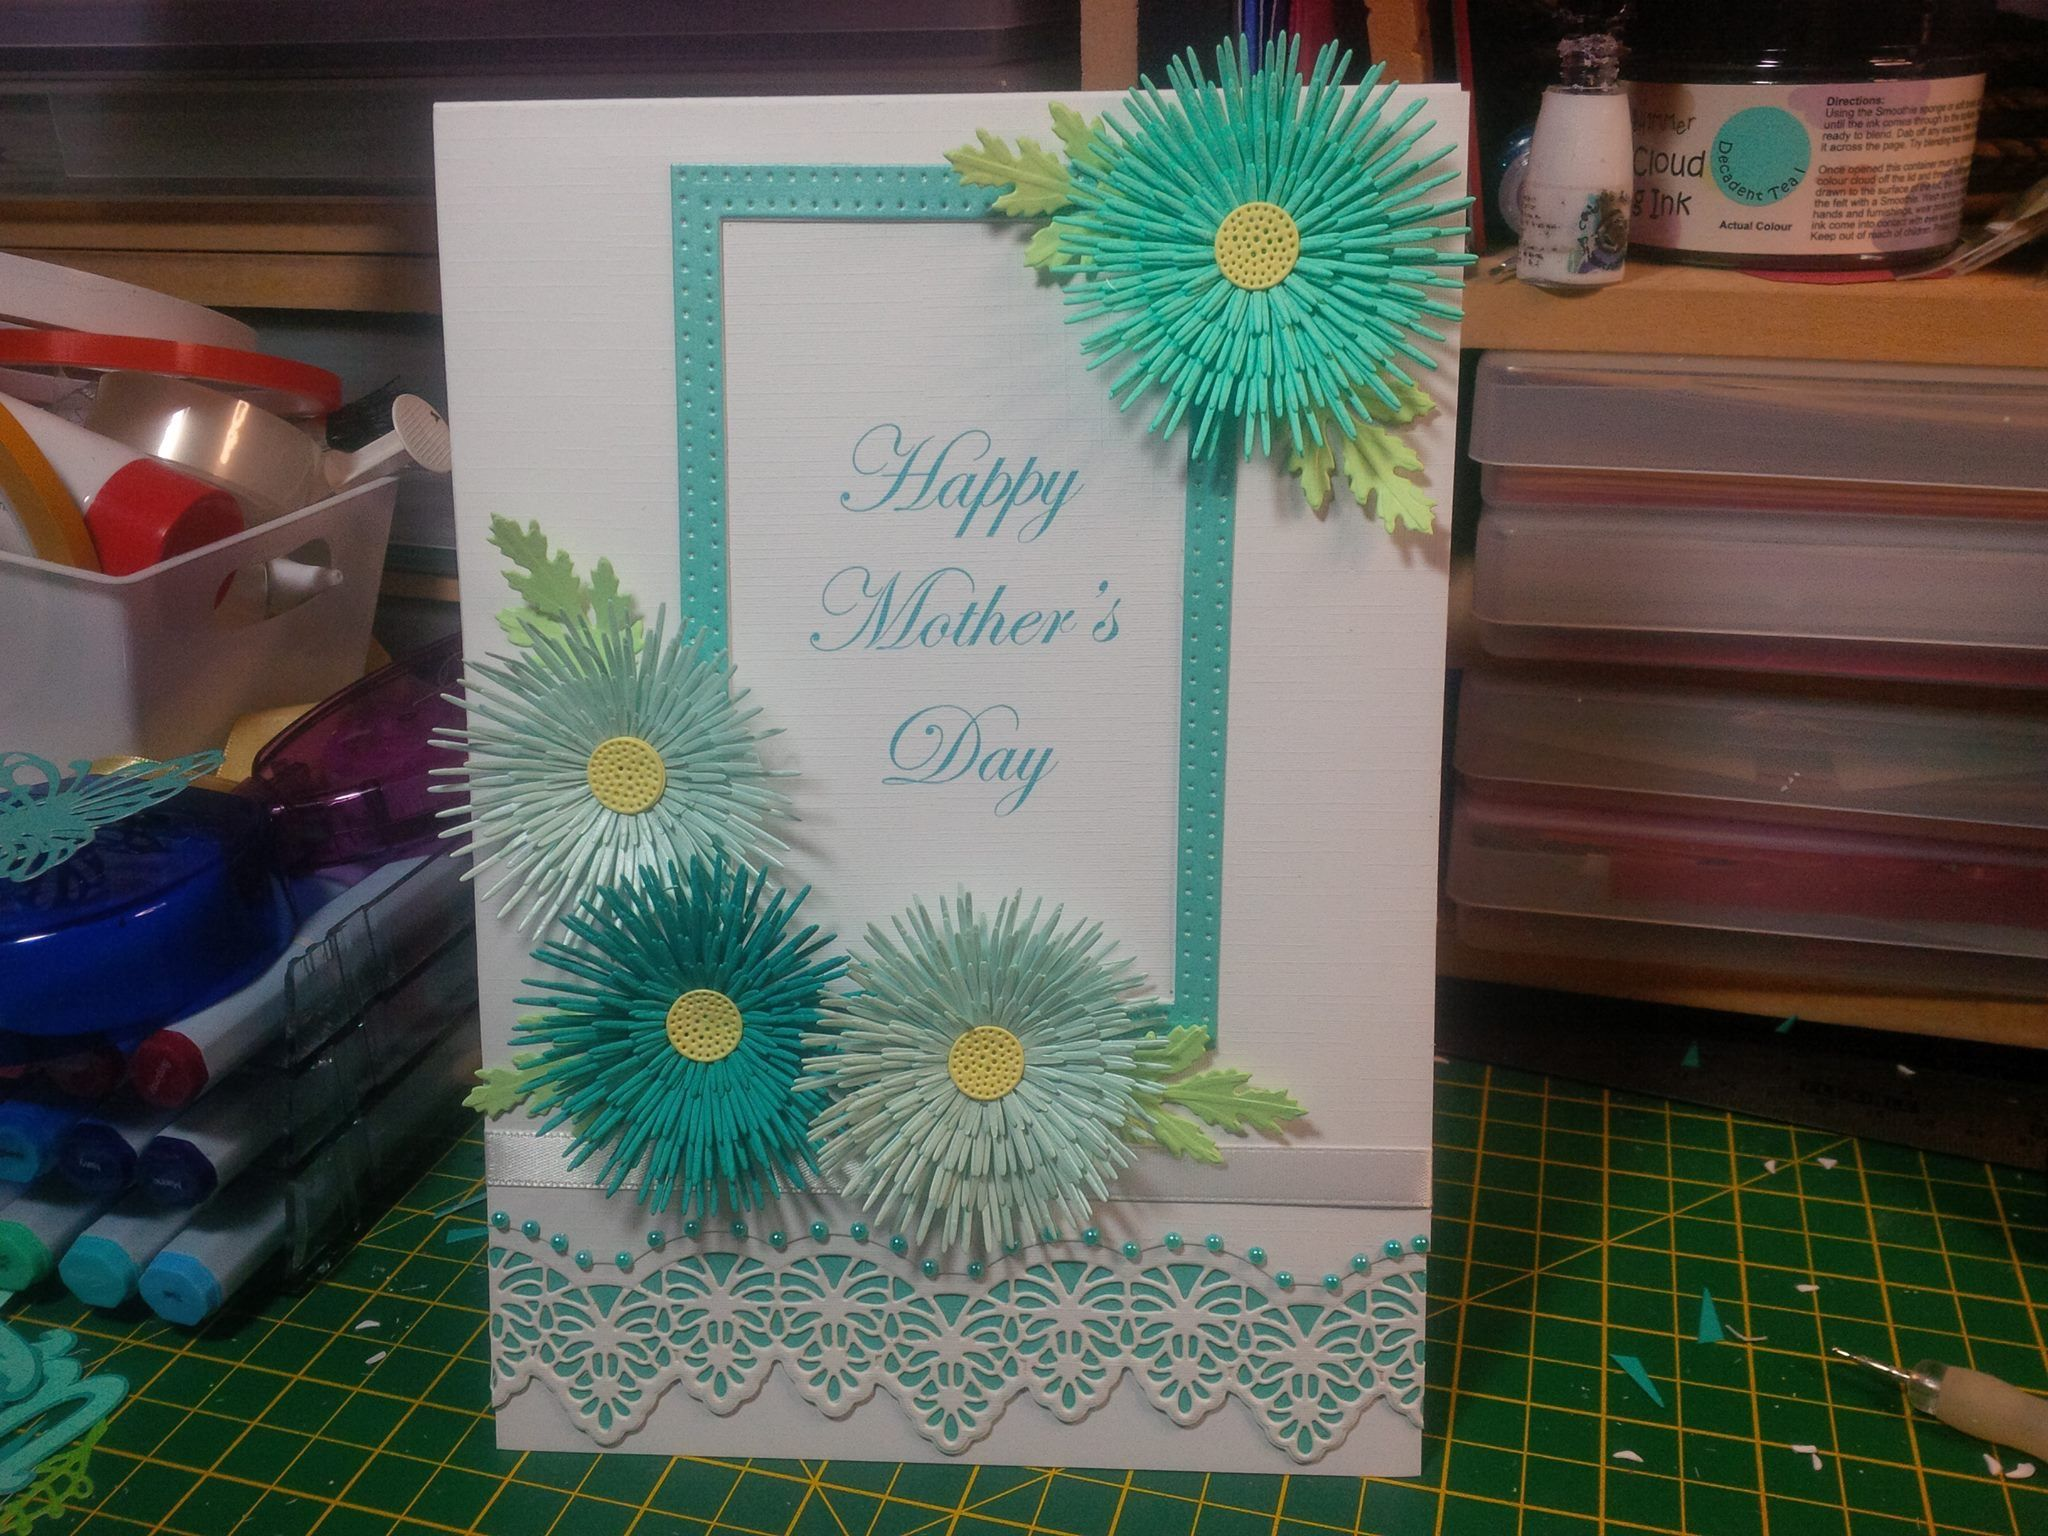 Pin by Mary Wilkie on Projects to Try Happy mothers day